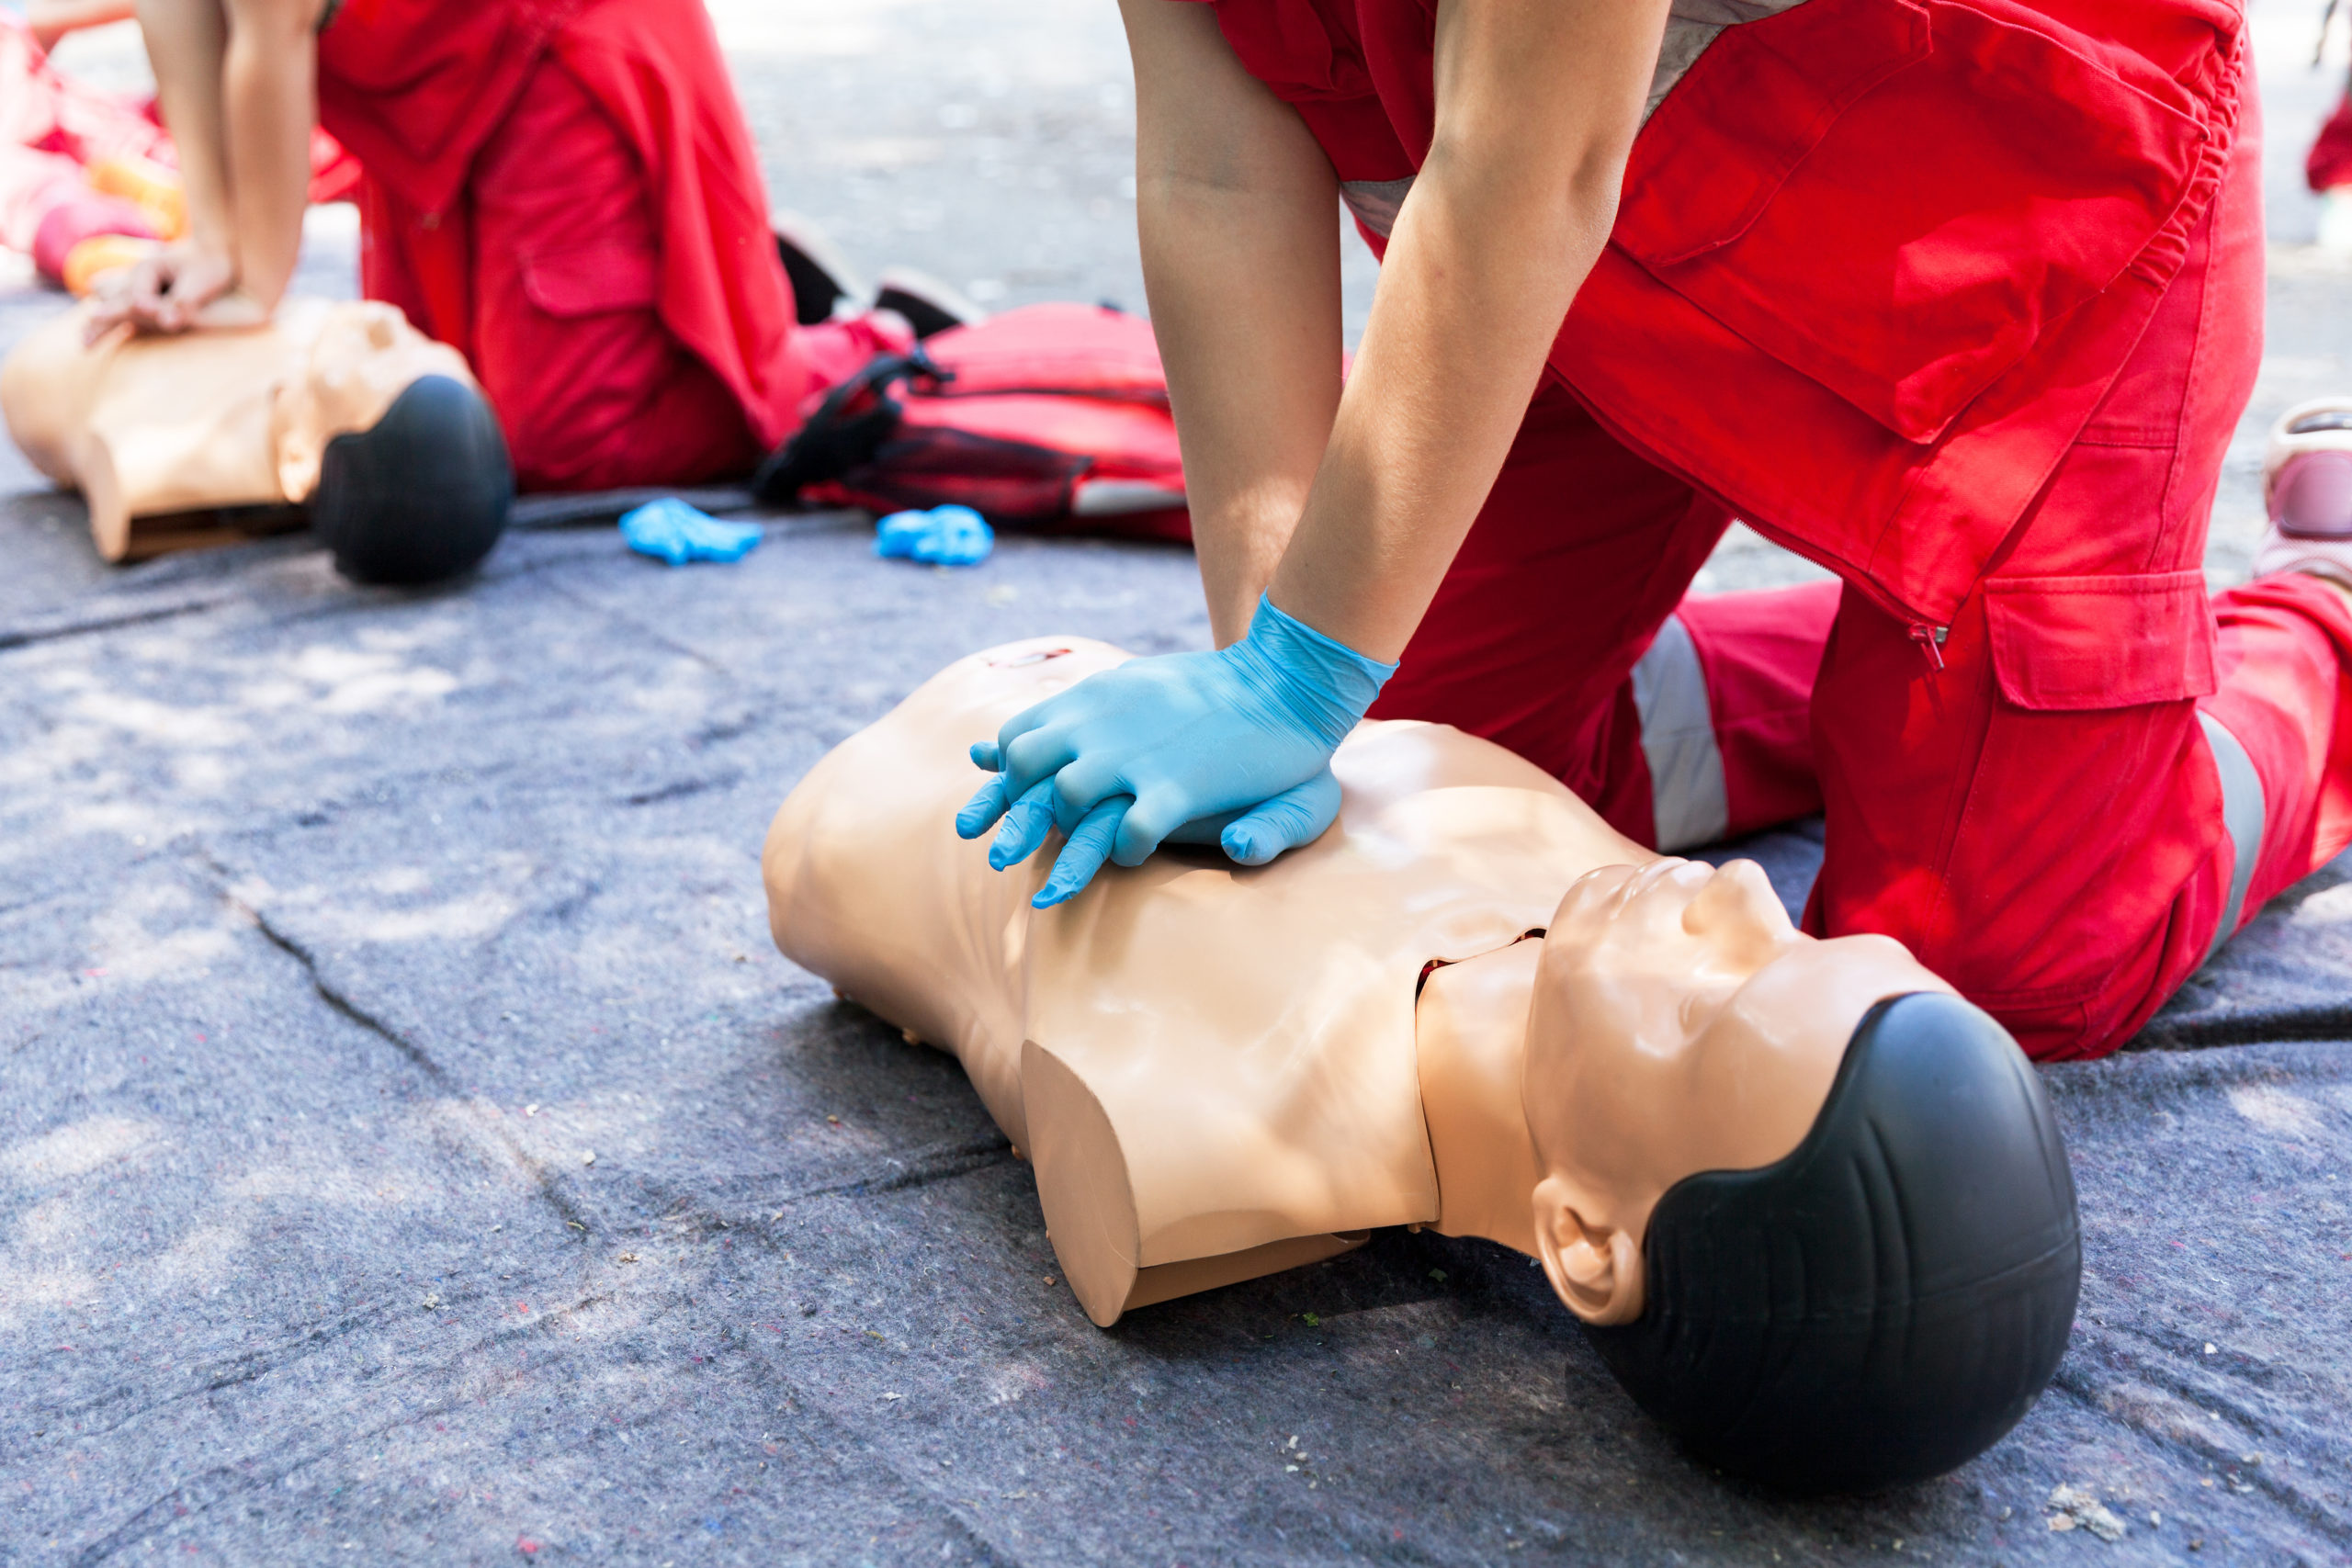 Cardiopulmonary resuscitation - CPR. First aid training detail. Heart massage.